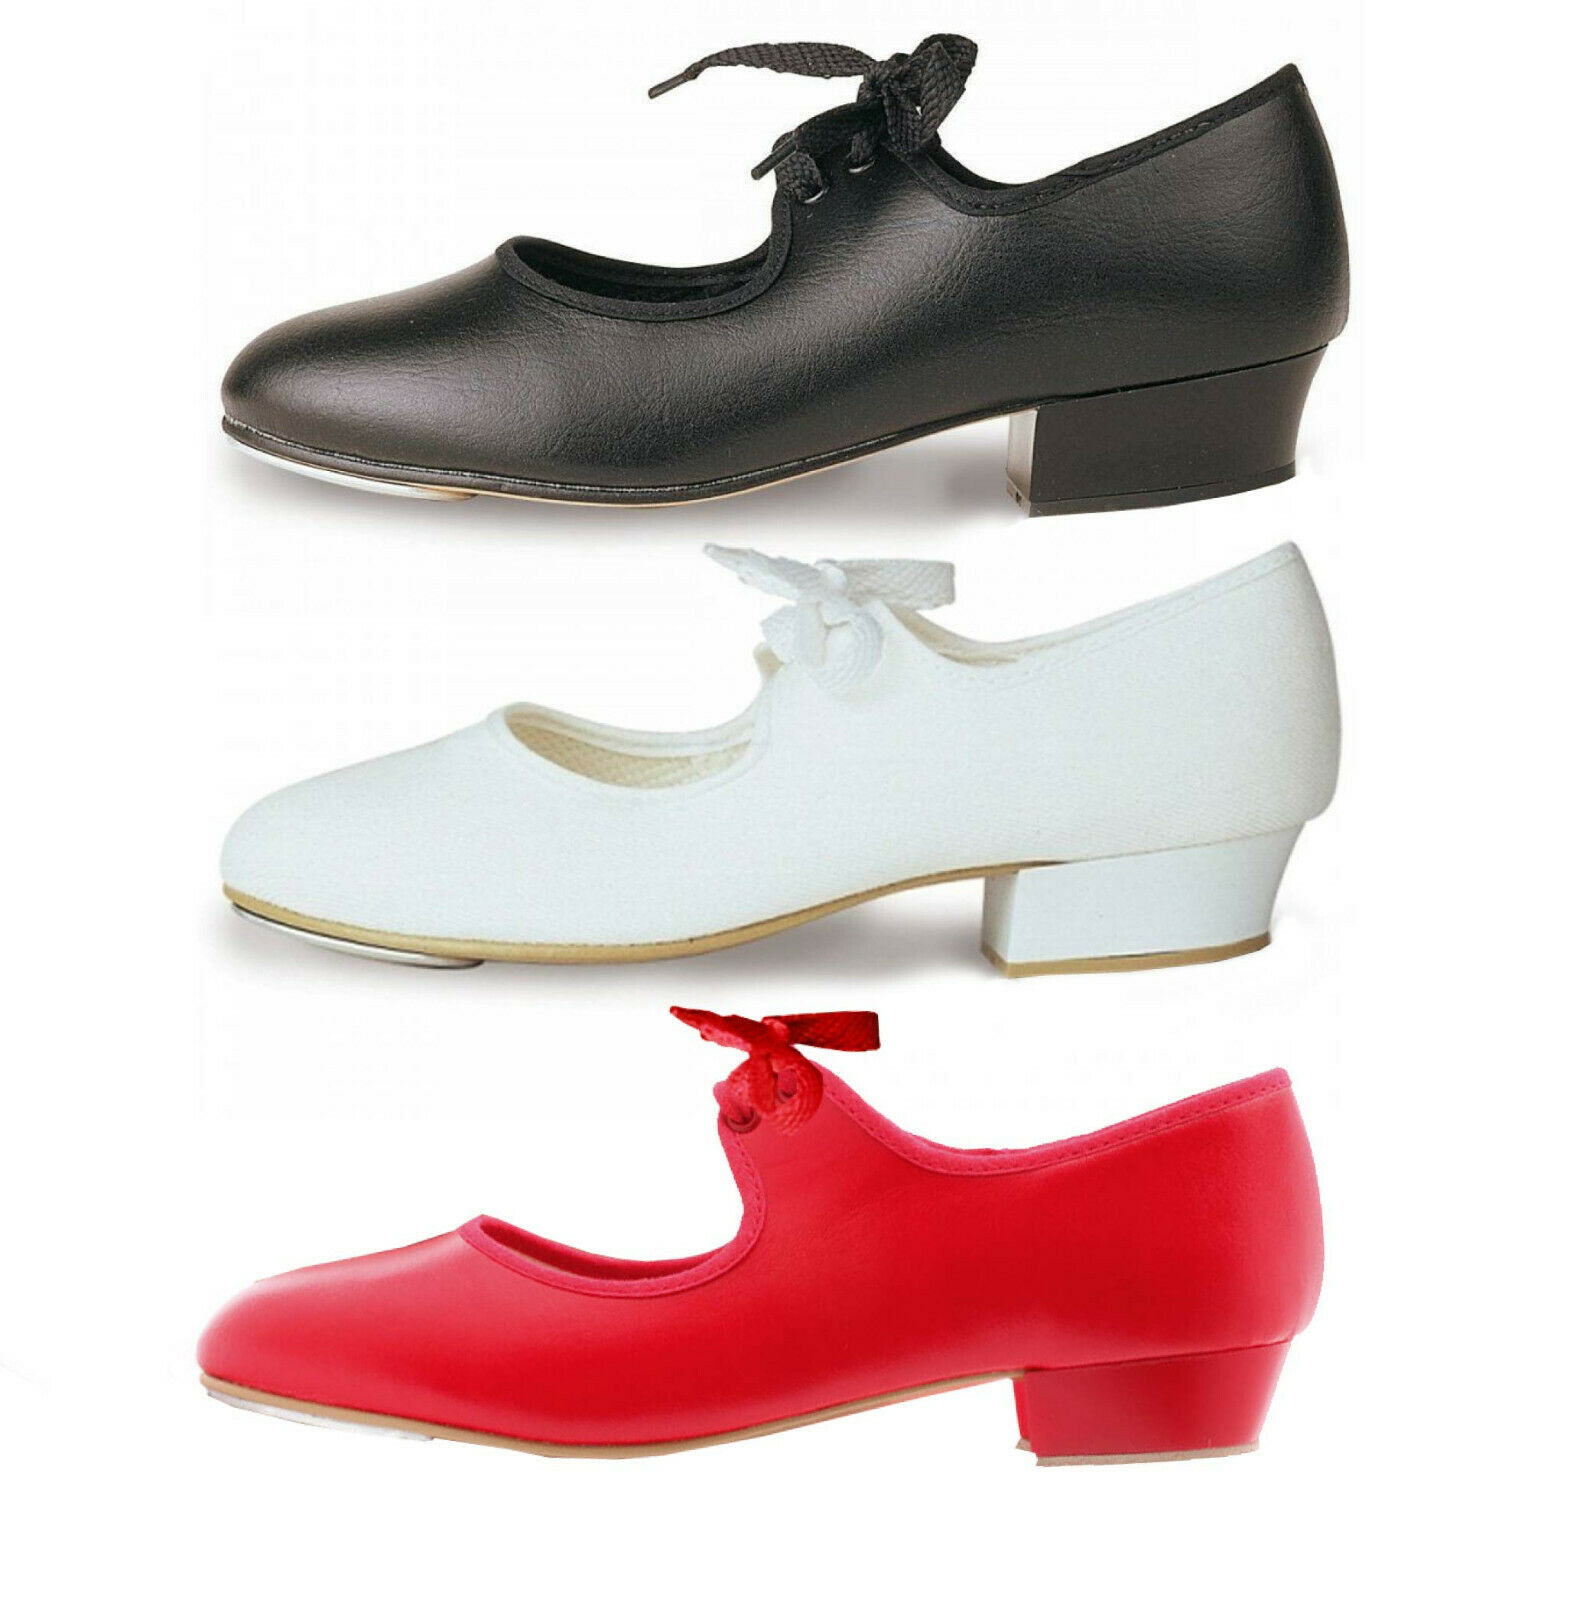 TAPPERS & POINTERS LOW HEEL TAP SHOES GIRLS WHITE BLACK RED PU CANVAS DANCE 5C-8